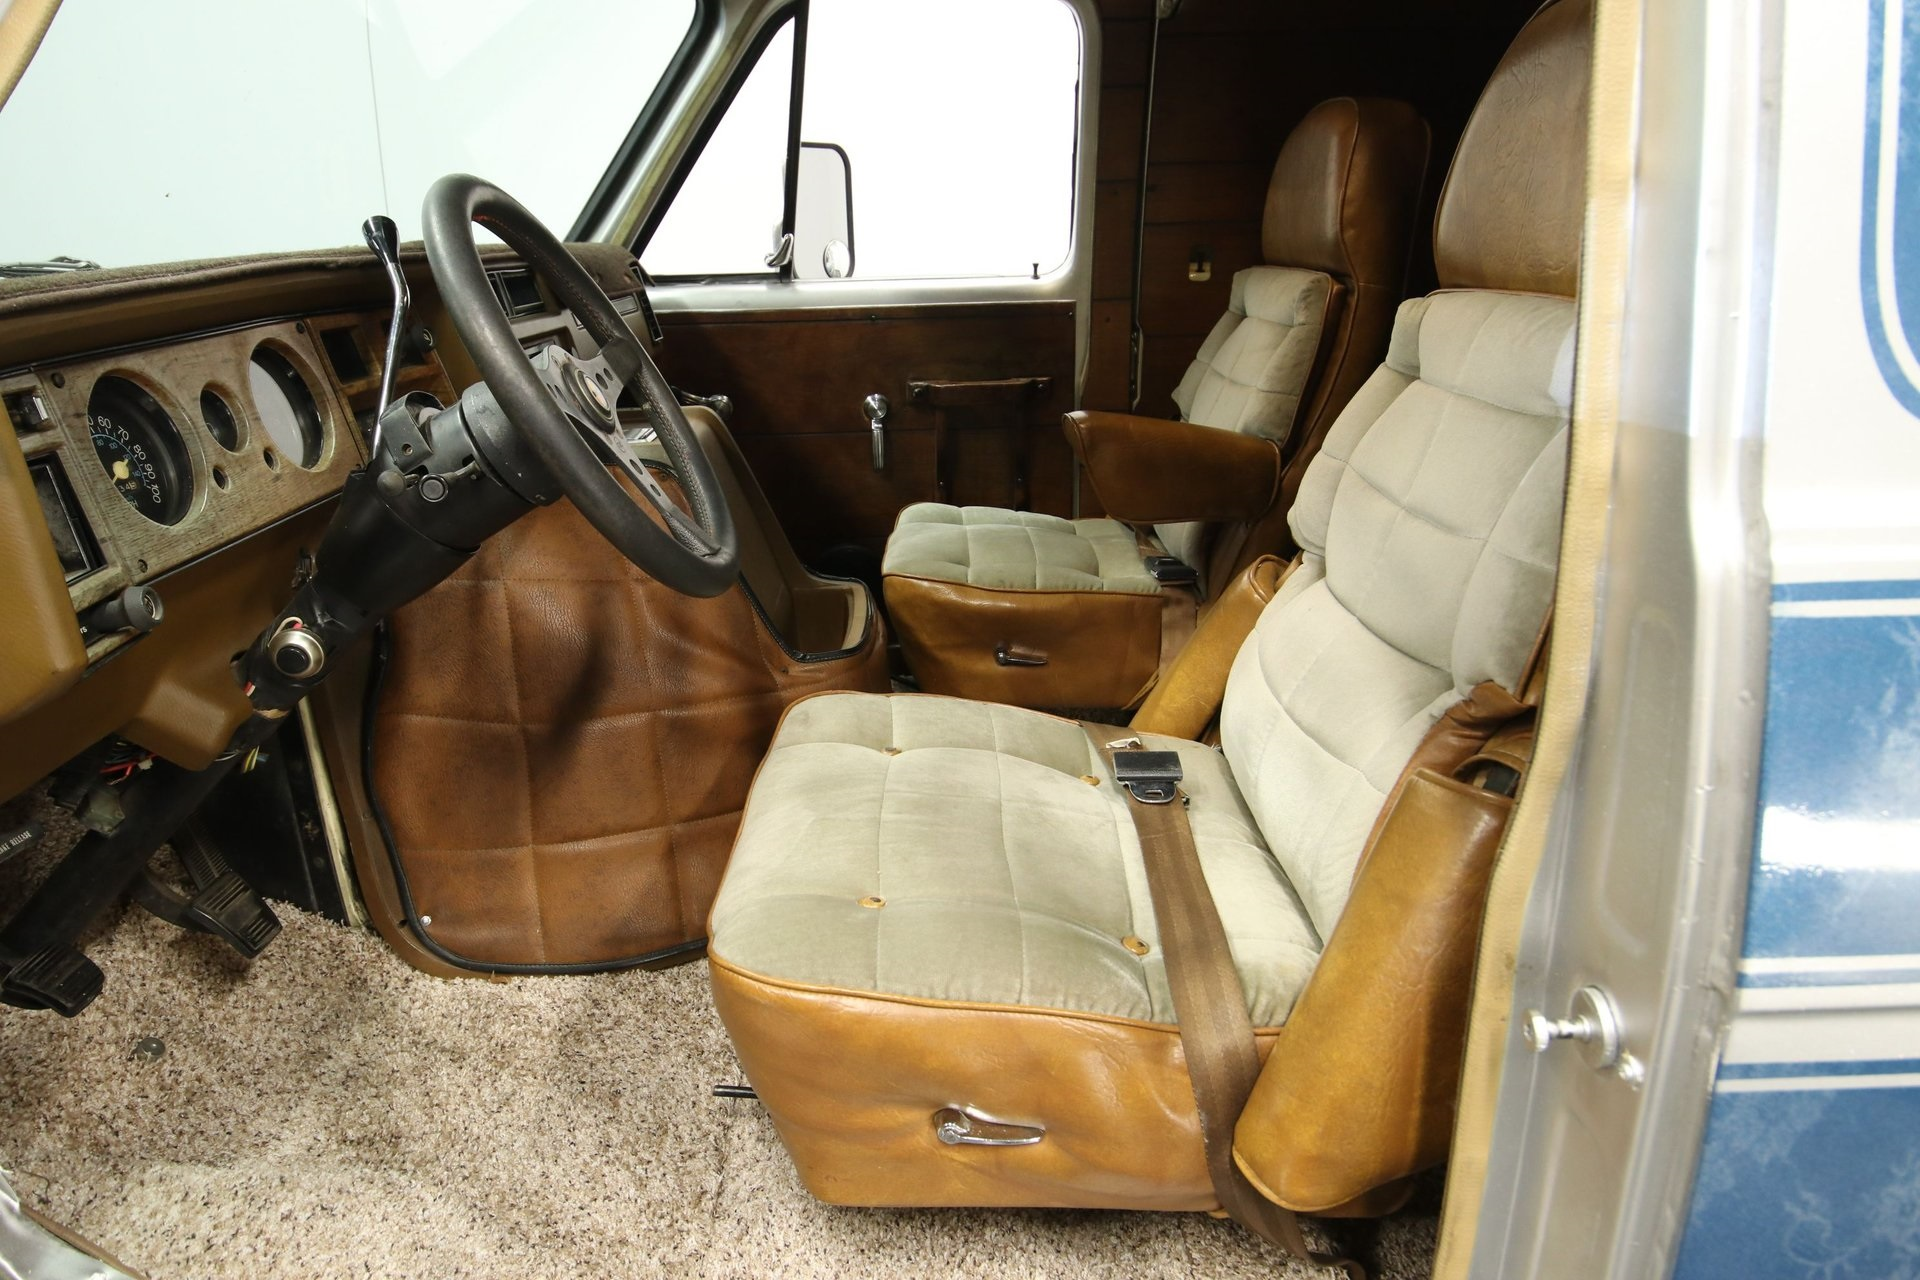 1977-chevrolet-g20-shorty-van-qddj4-z